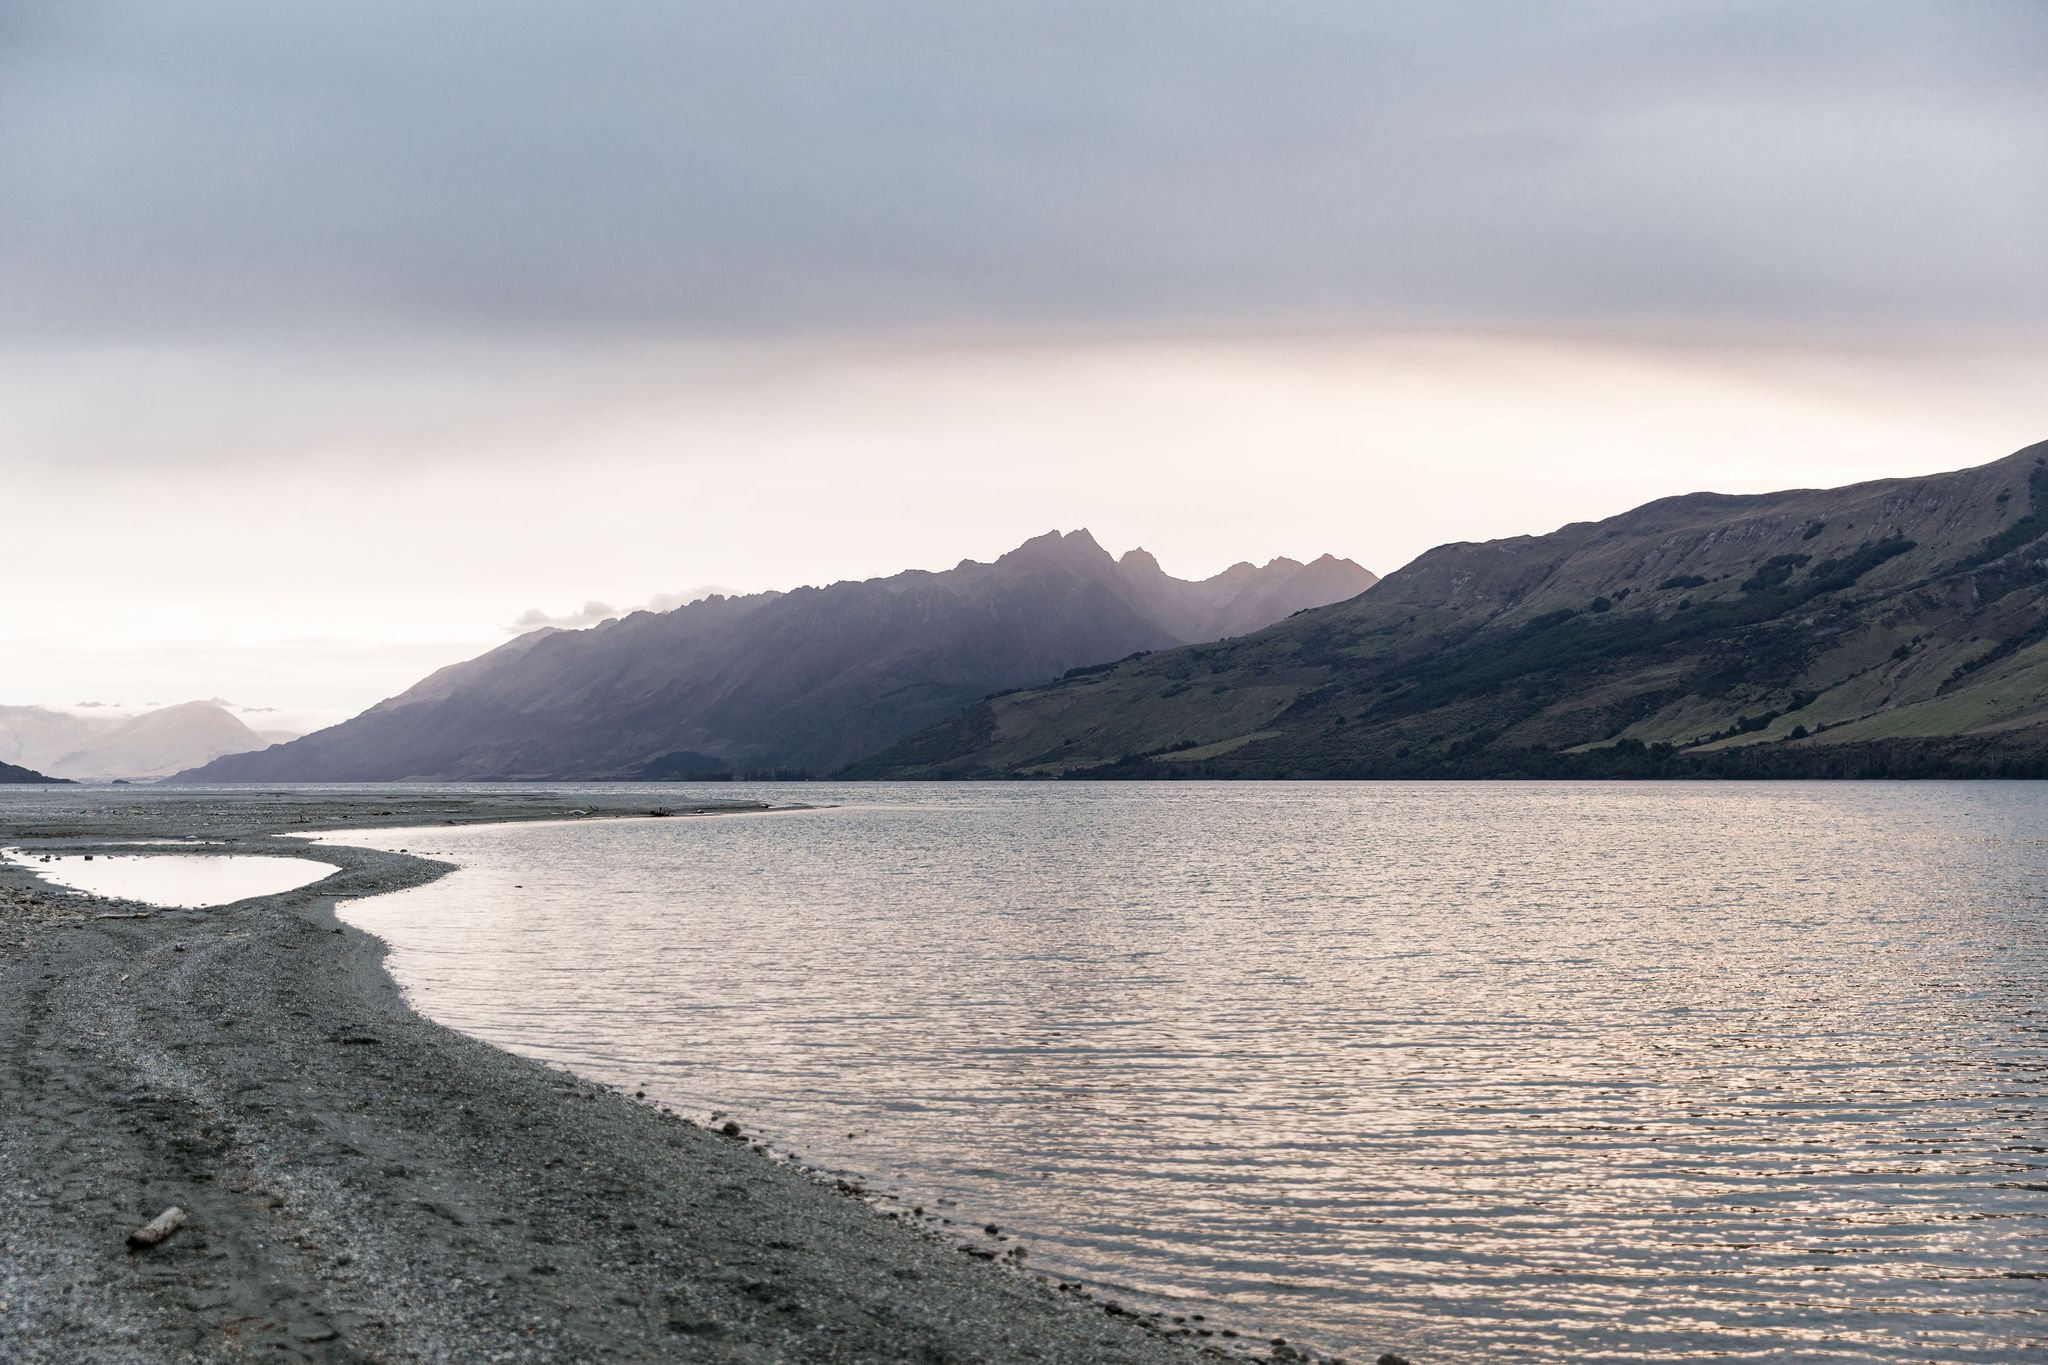 Glenorchy Lake Shore sunset at the end of 2020